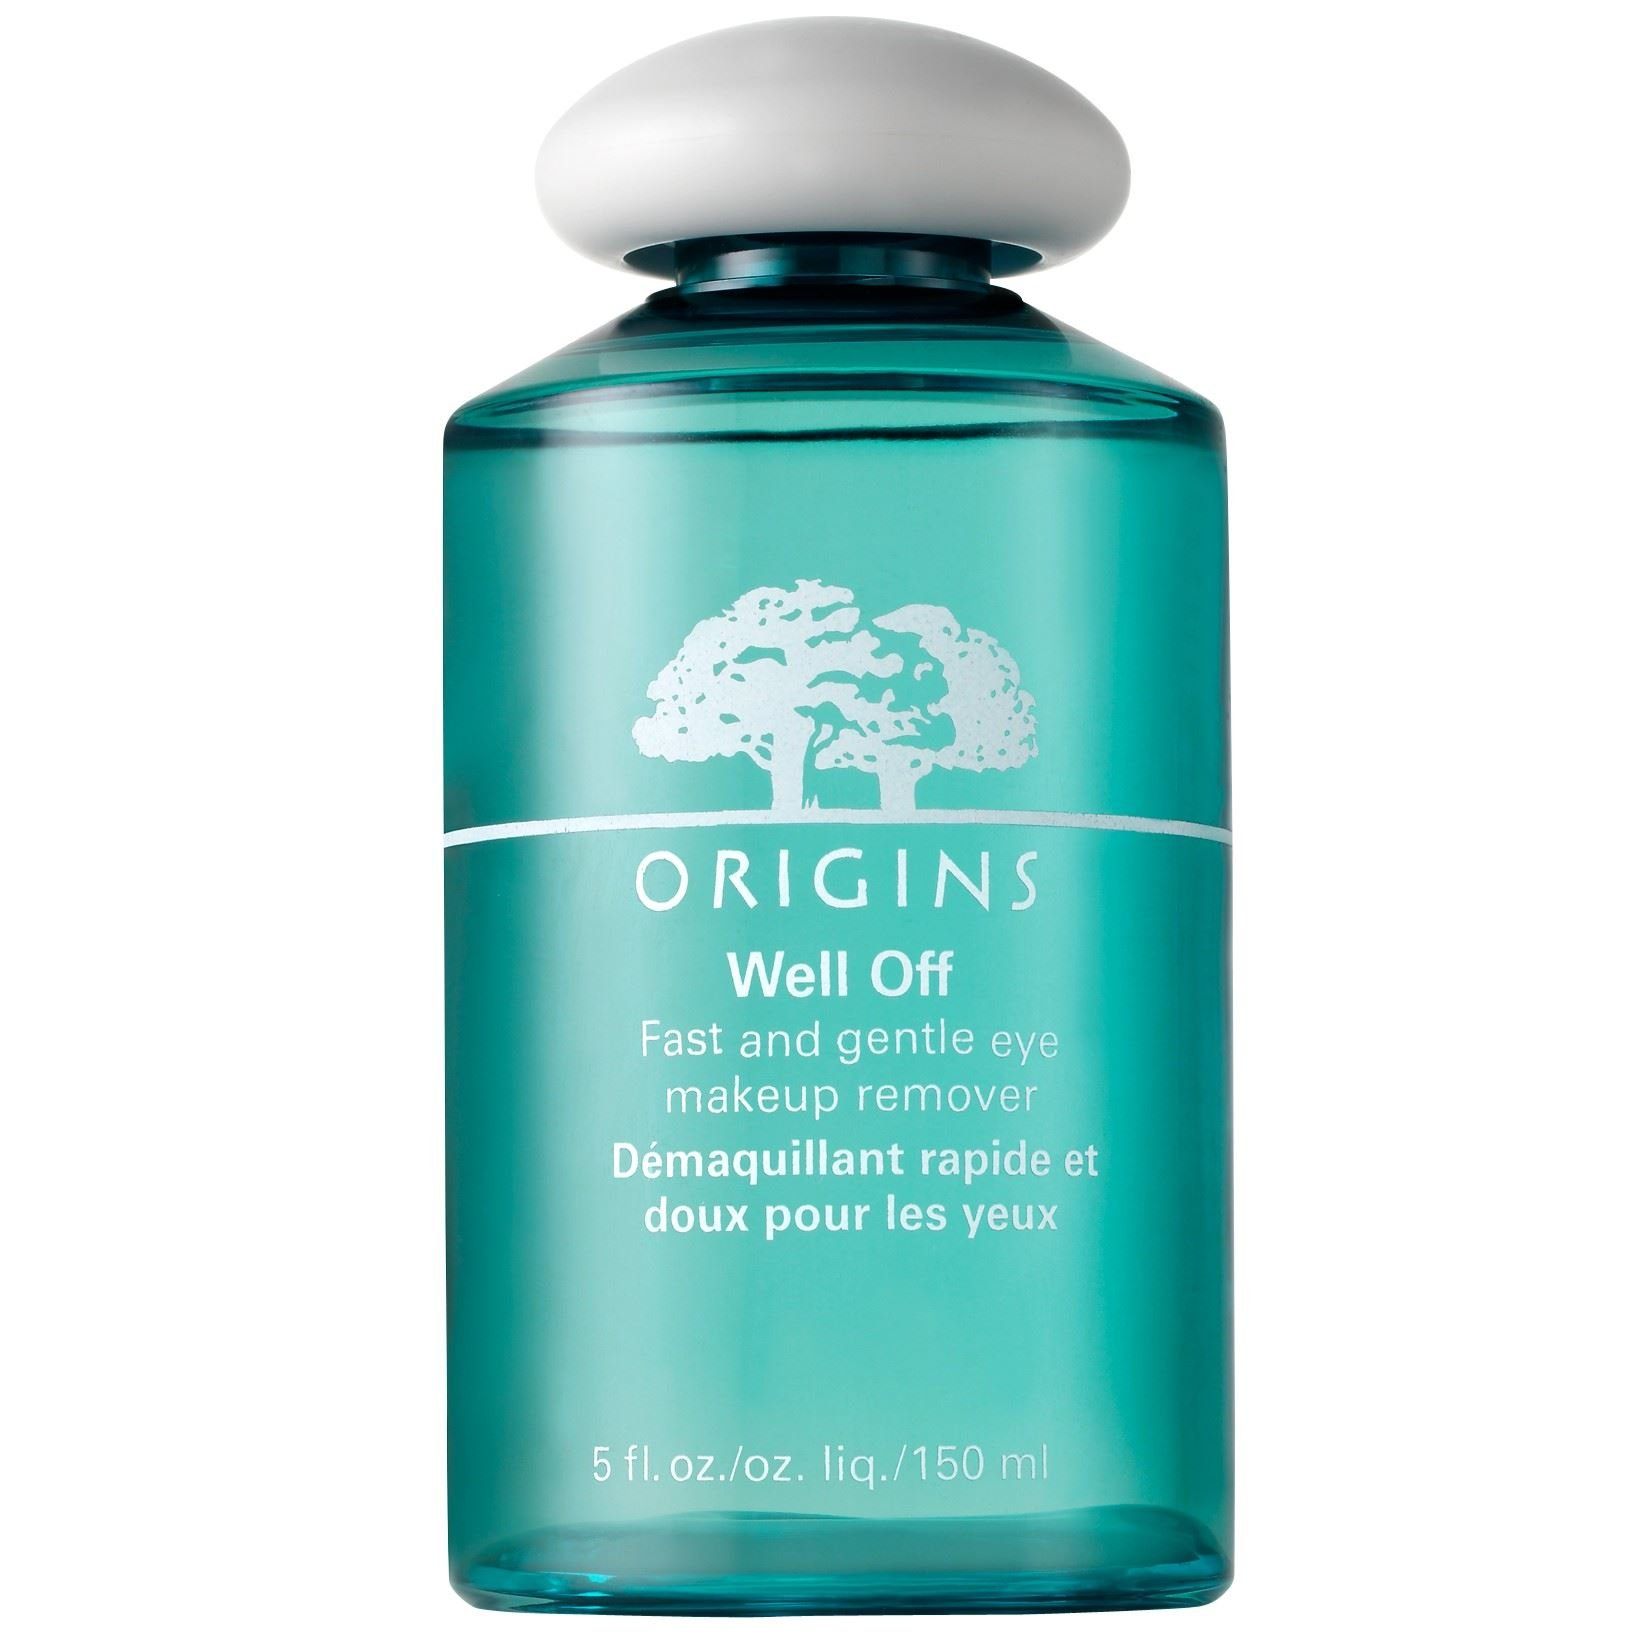 Origins Well Off Fast And Gentle Eye Makeup Remover 150ml - Pack of 6